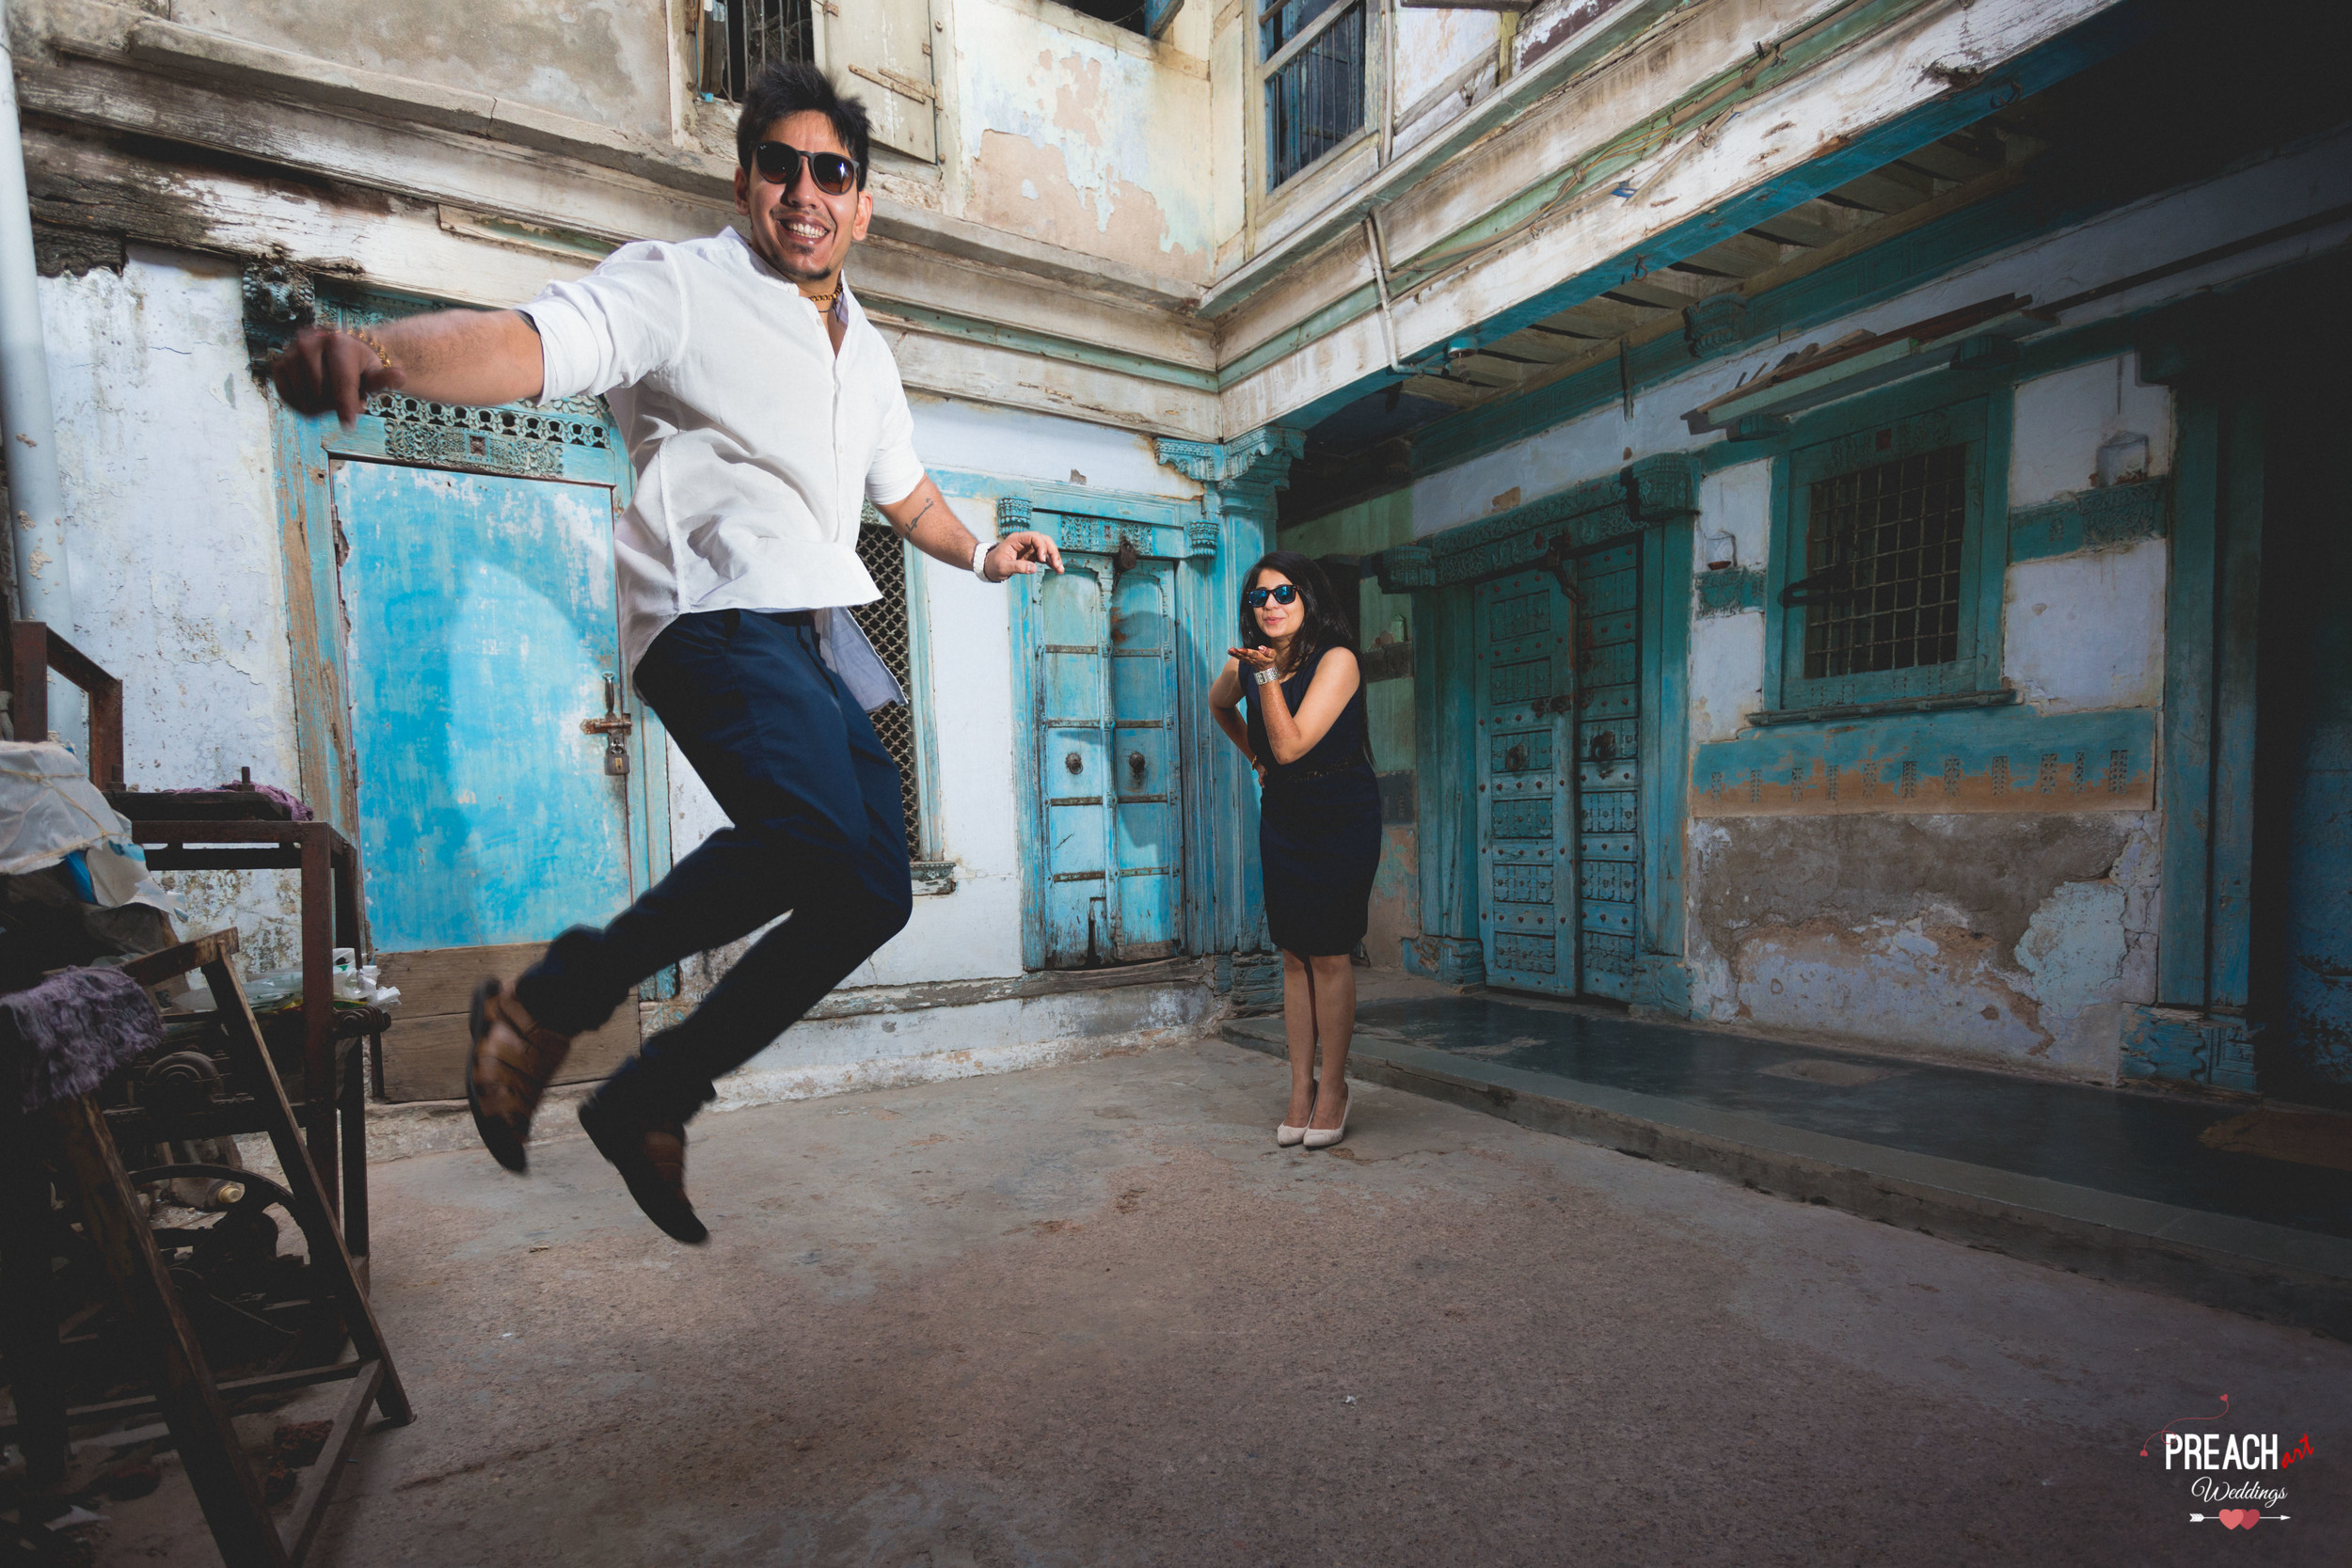 V&M_PRE-WEDDING SHOOT_AHMEDABAD OLD CITY_PREACH ART-21.jpg